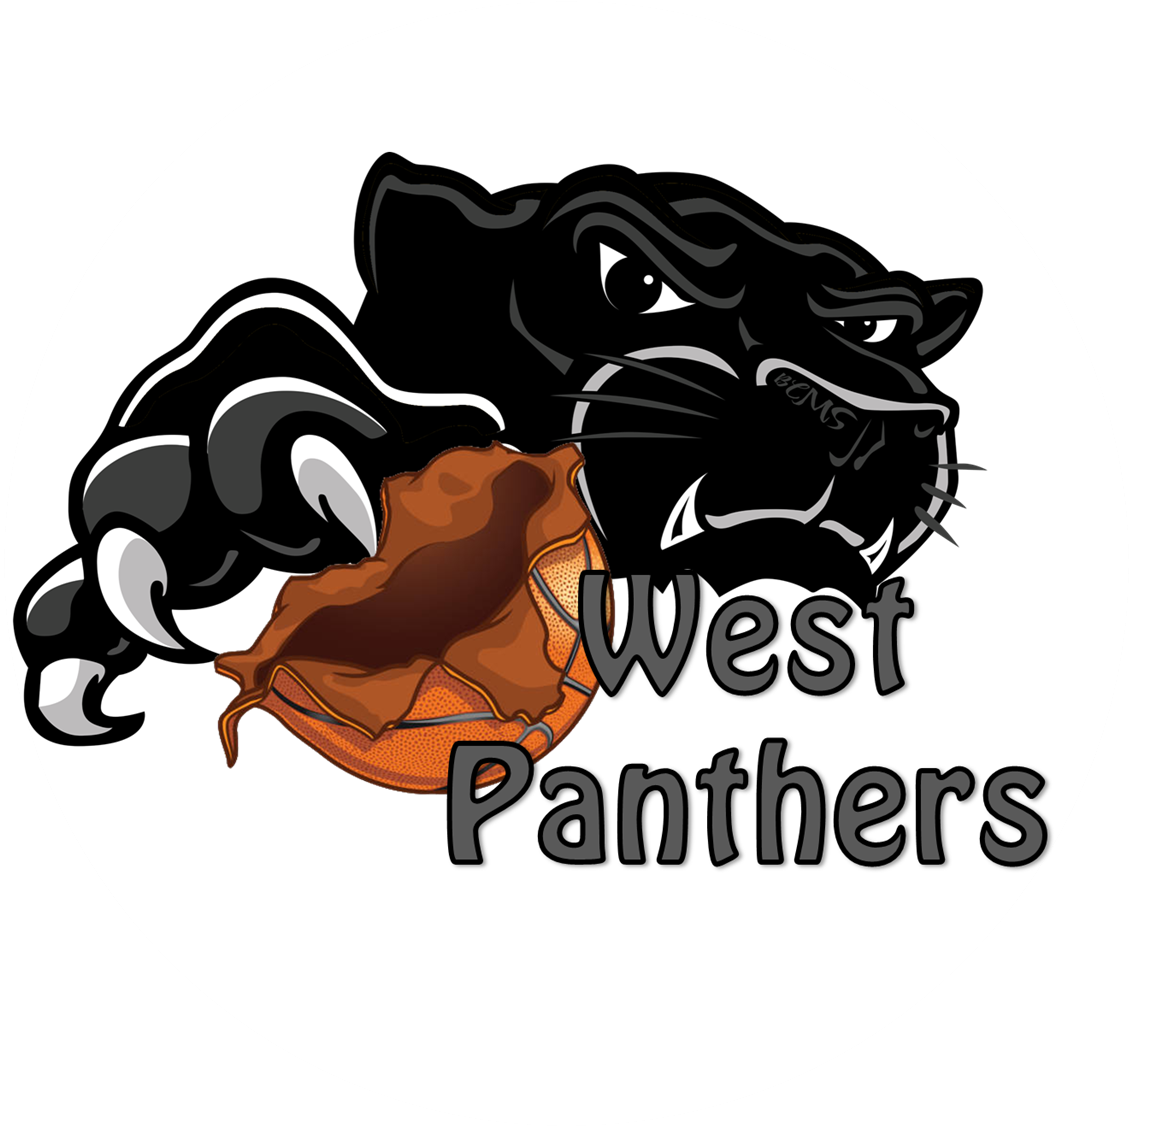 West Panthers